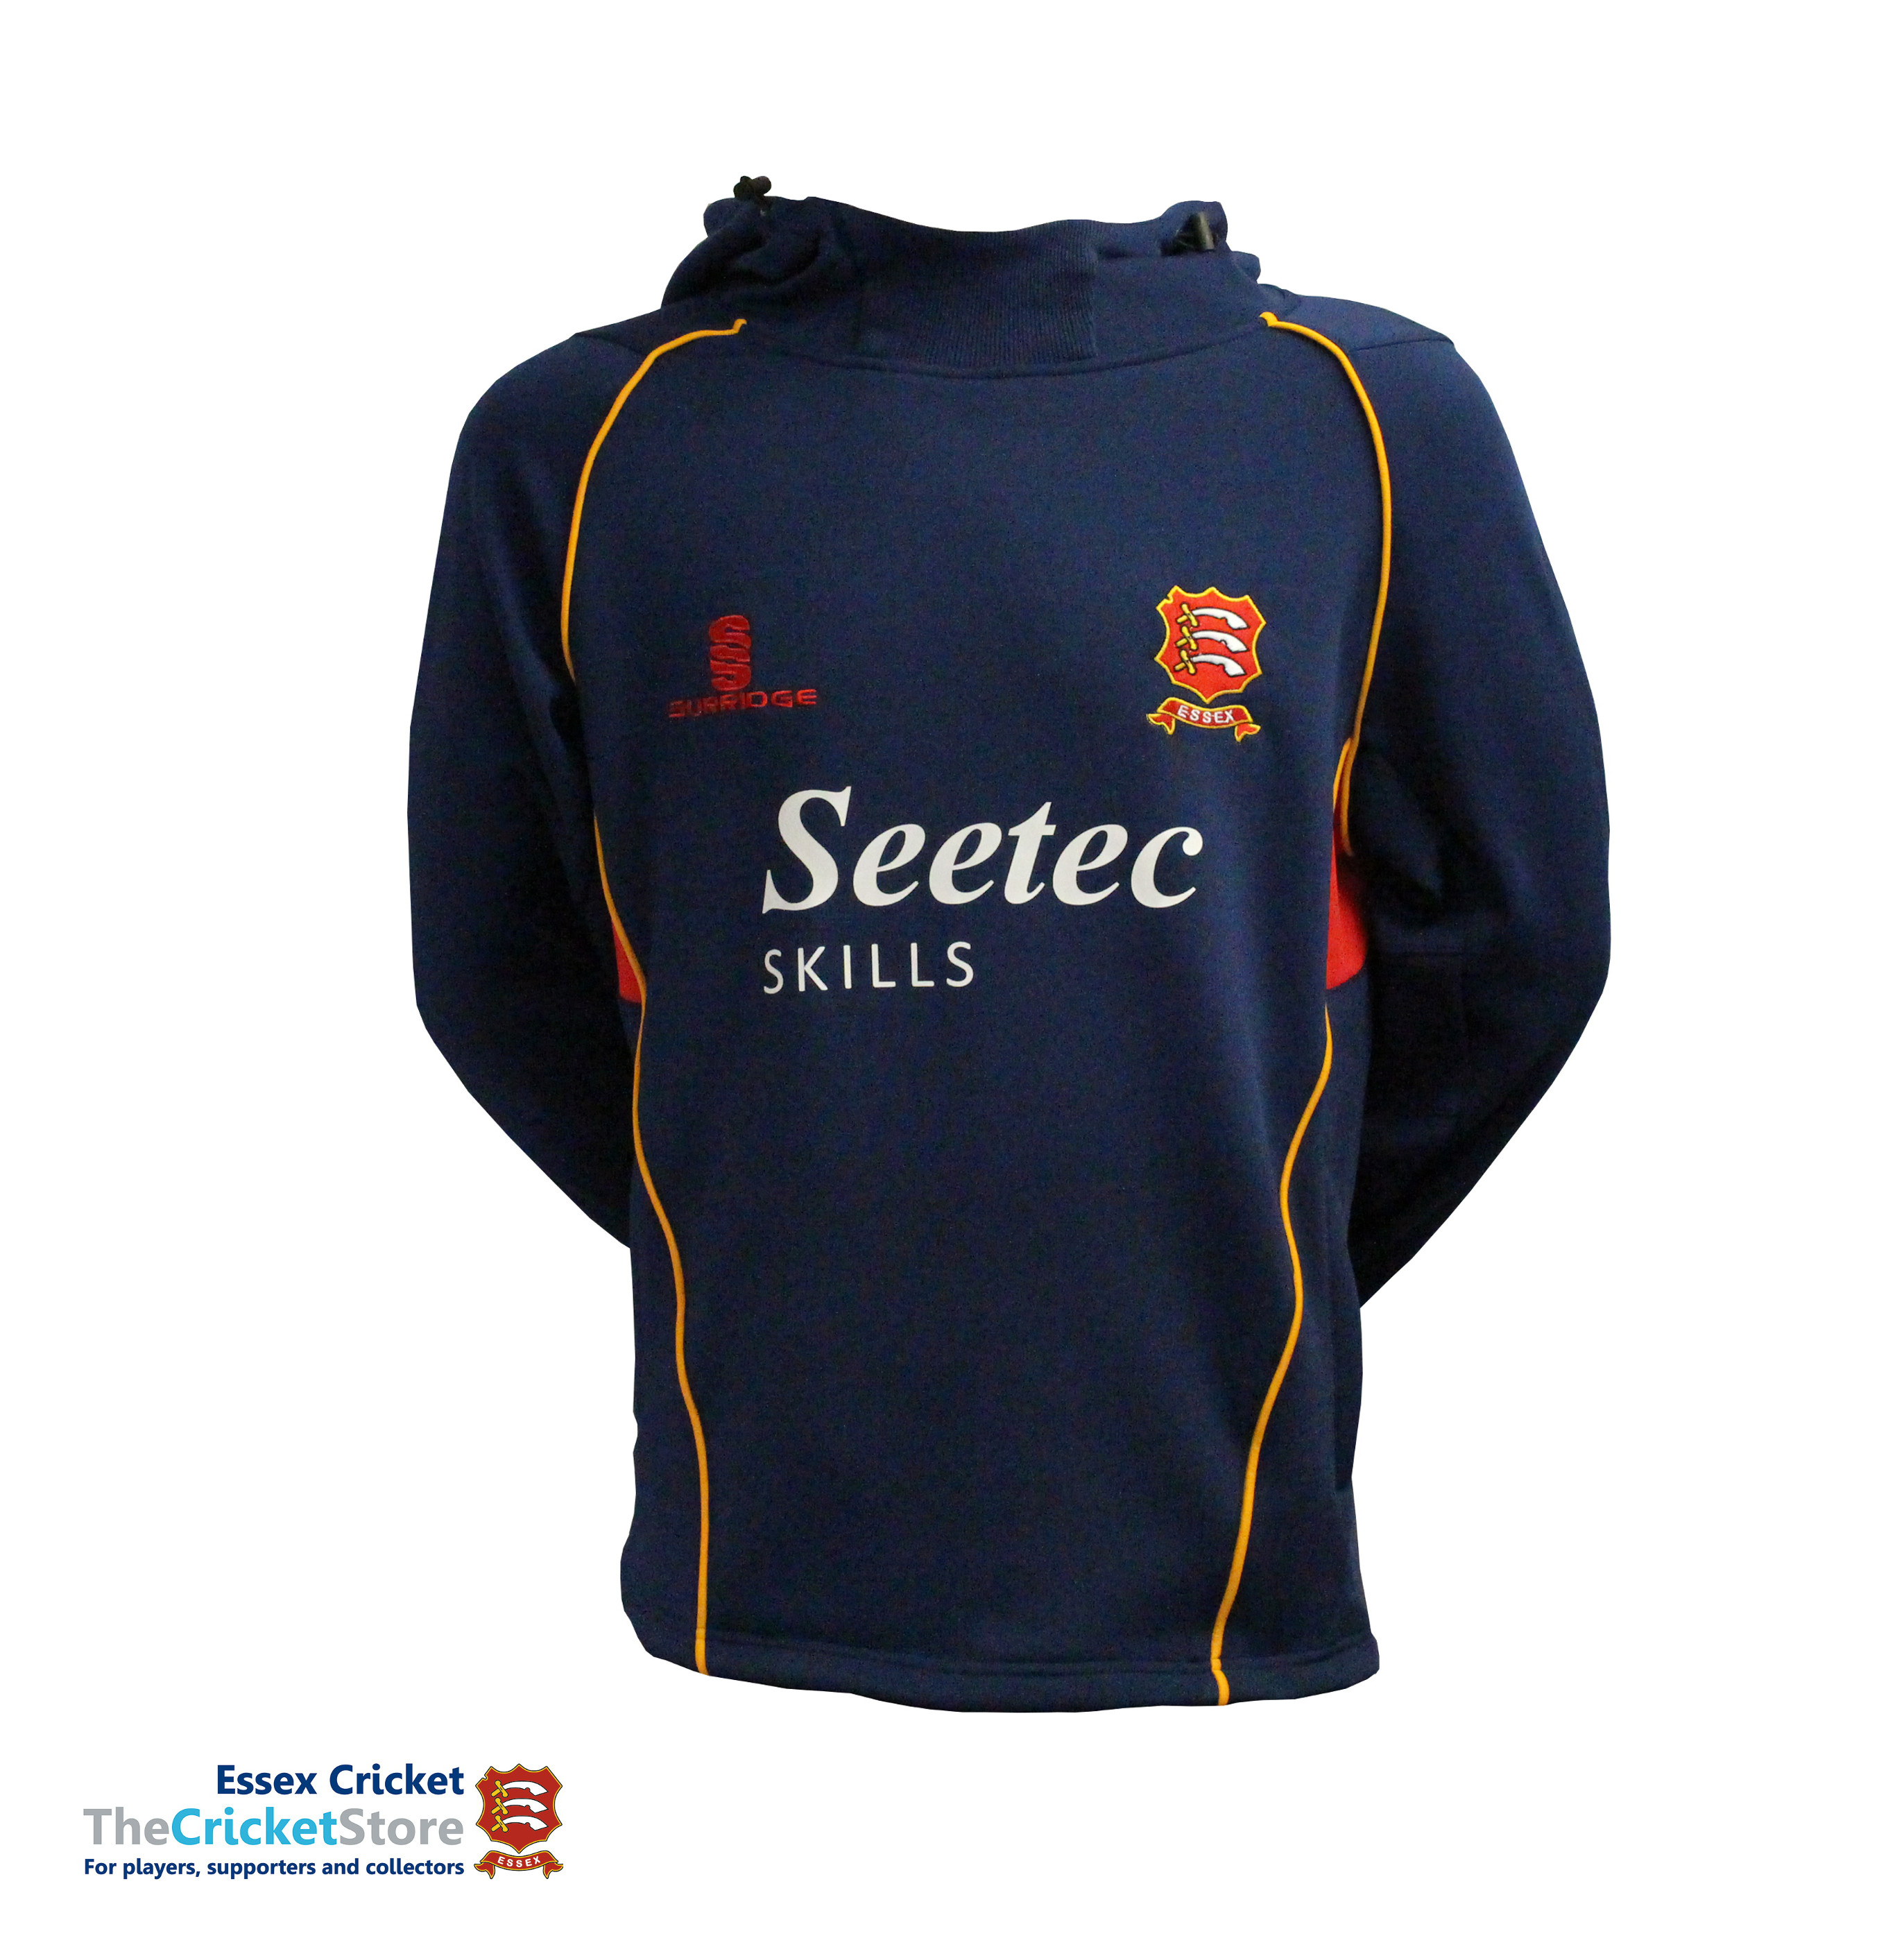 0f385df38cbd4 The Cricket Store at Essex Cricket – The official online store of ...